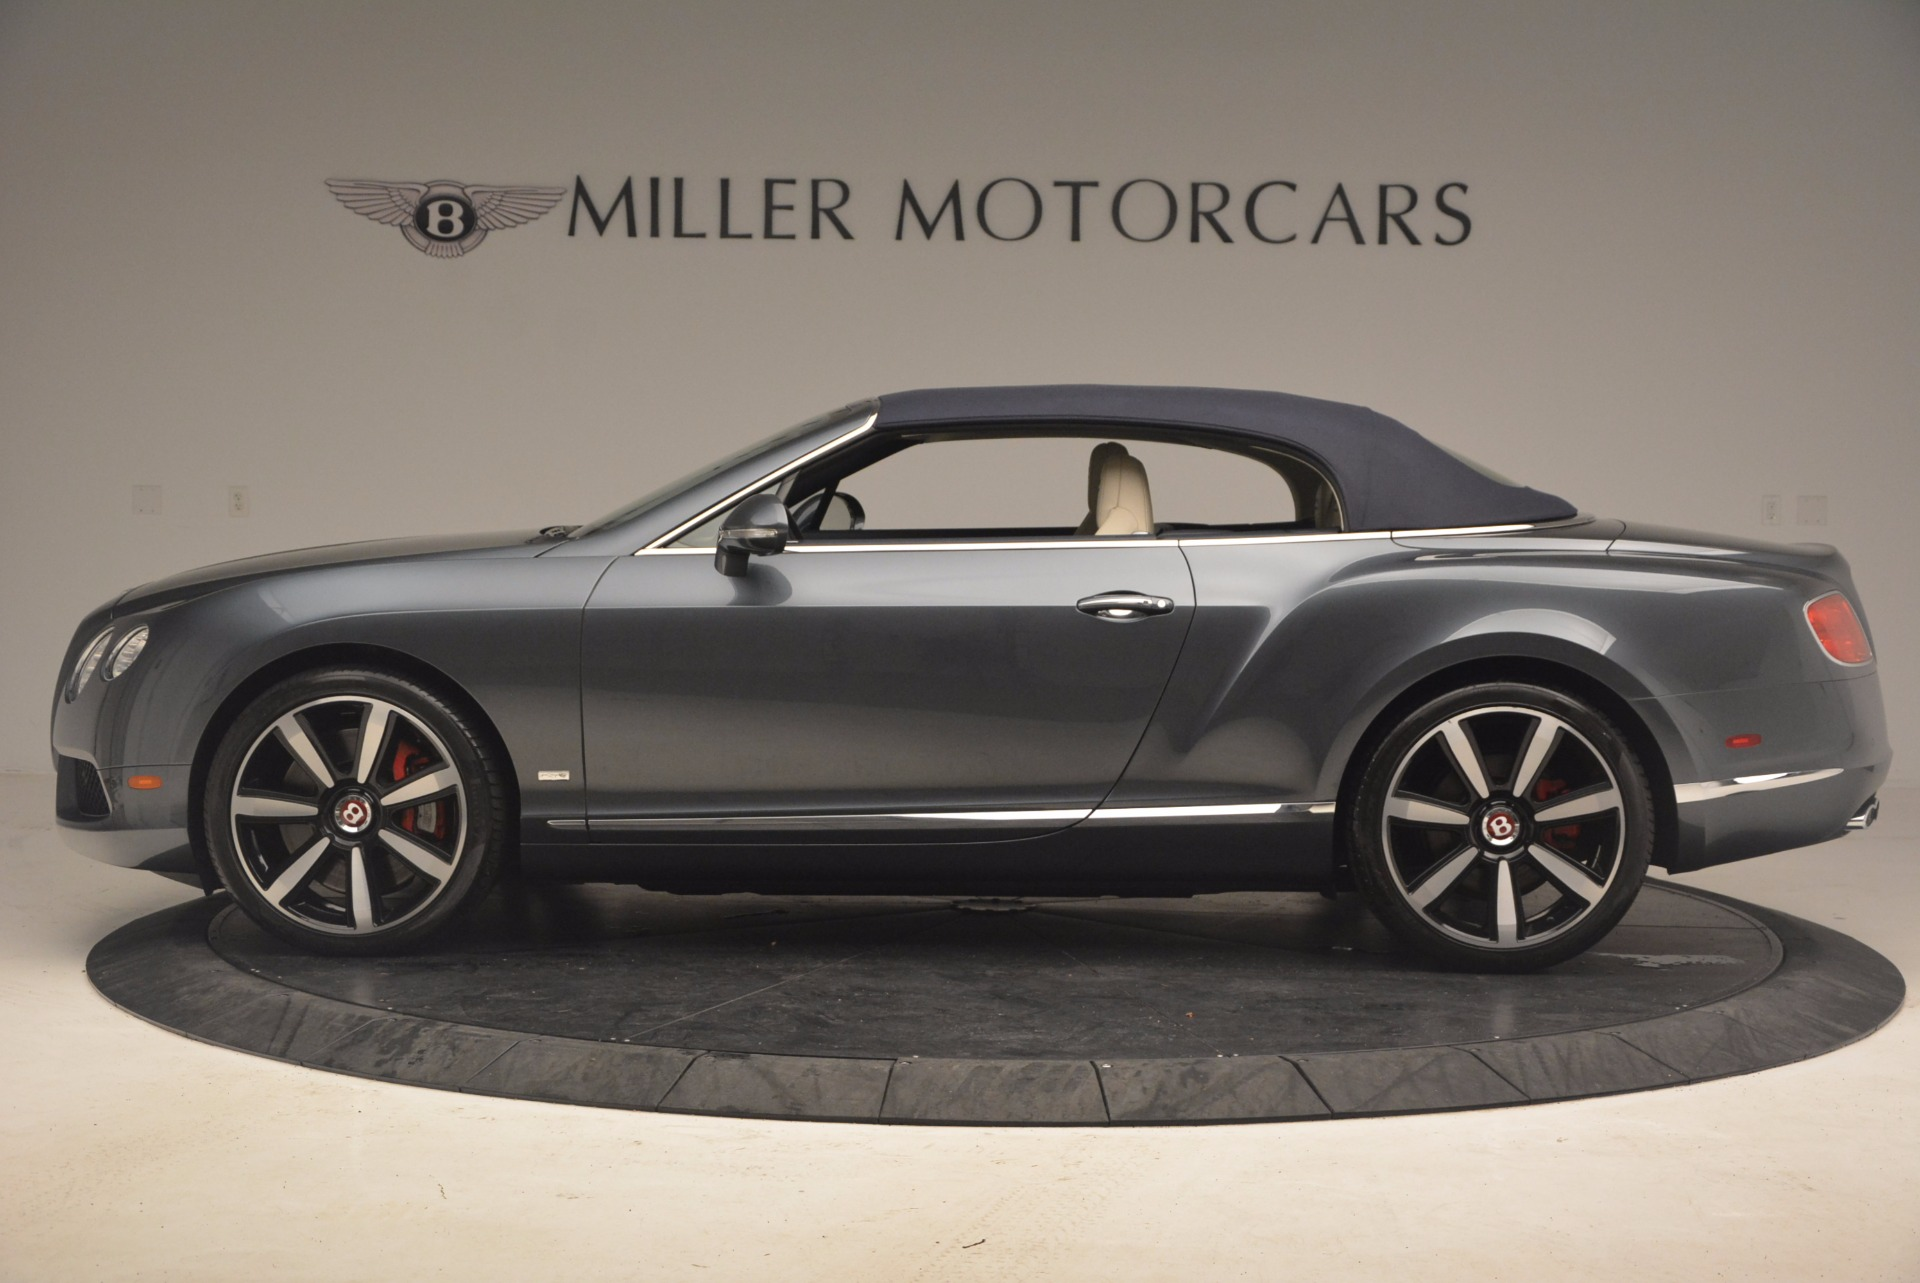 Used 2013 Bentley Continental GT V8 Le Mans Edition, 1 of 48 For Sale In Westport, CT 1288_p16